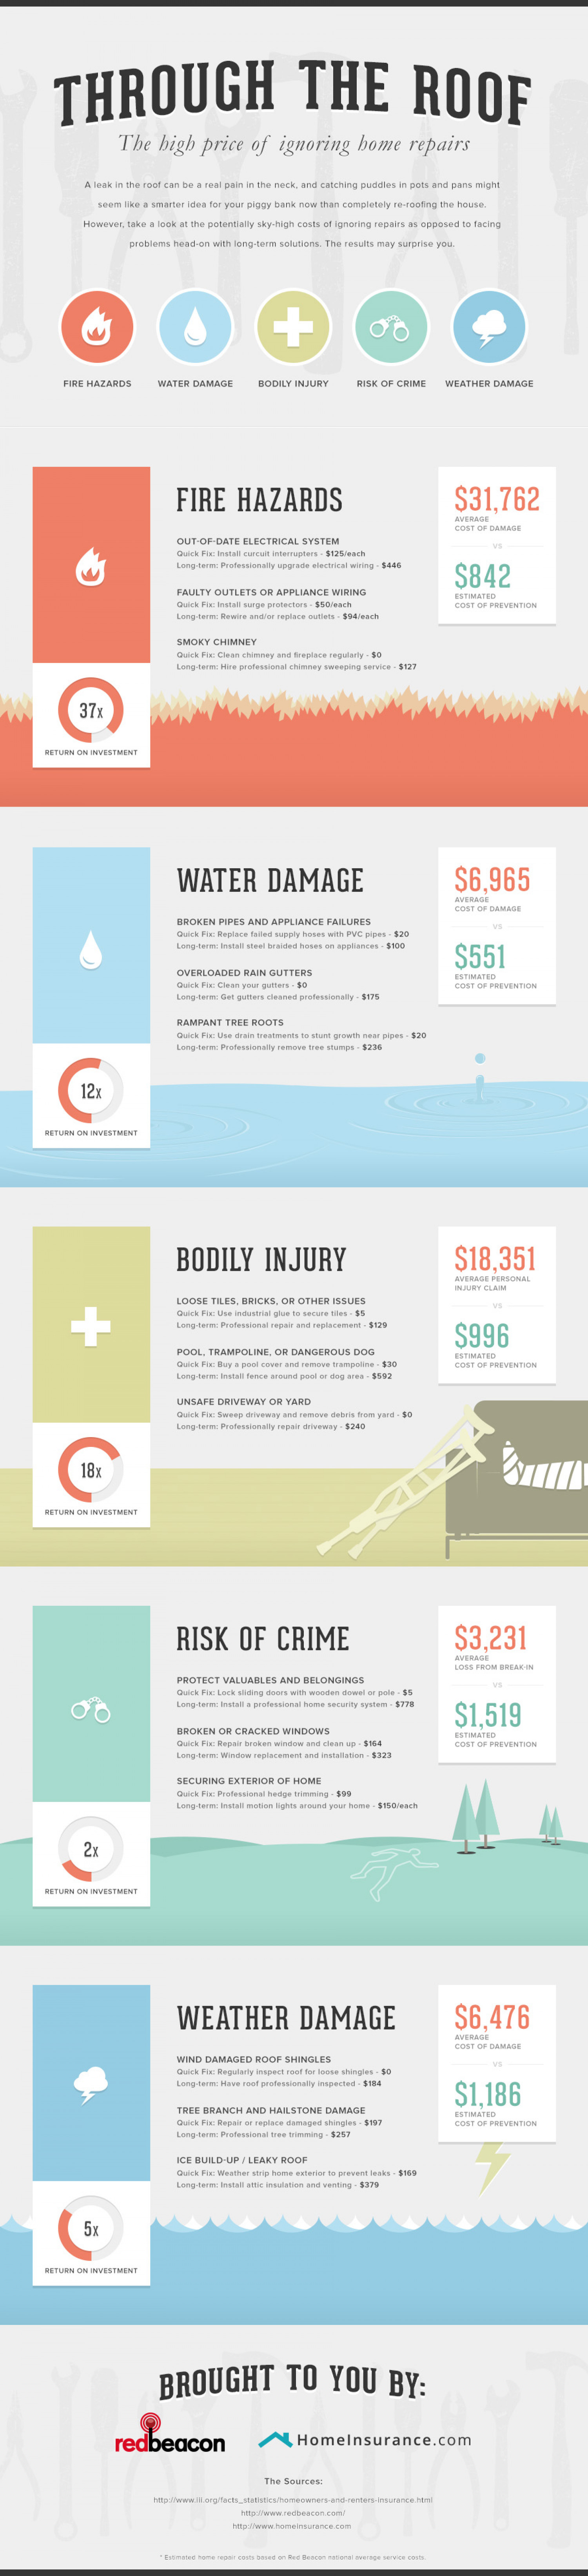 Through the Roof- The High Cost of Ignoring Home Repairs Infographic